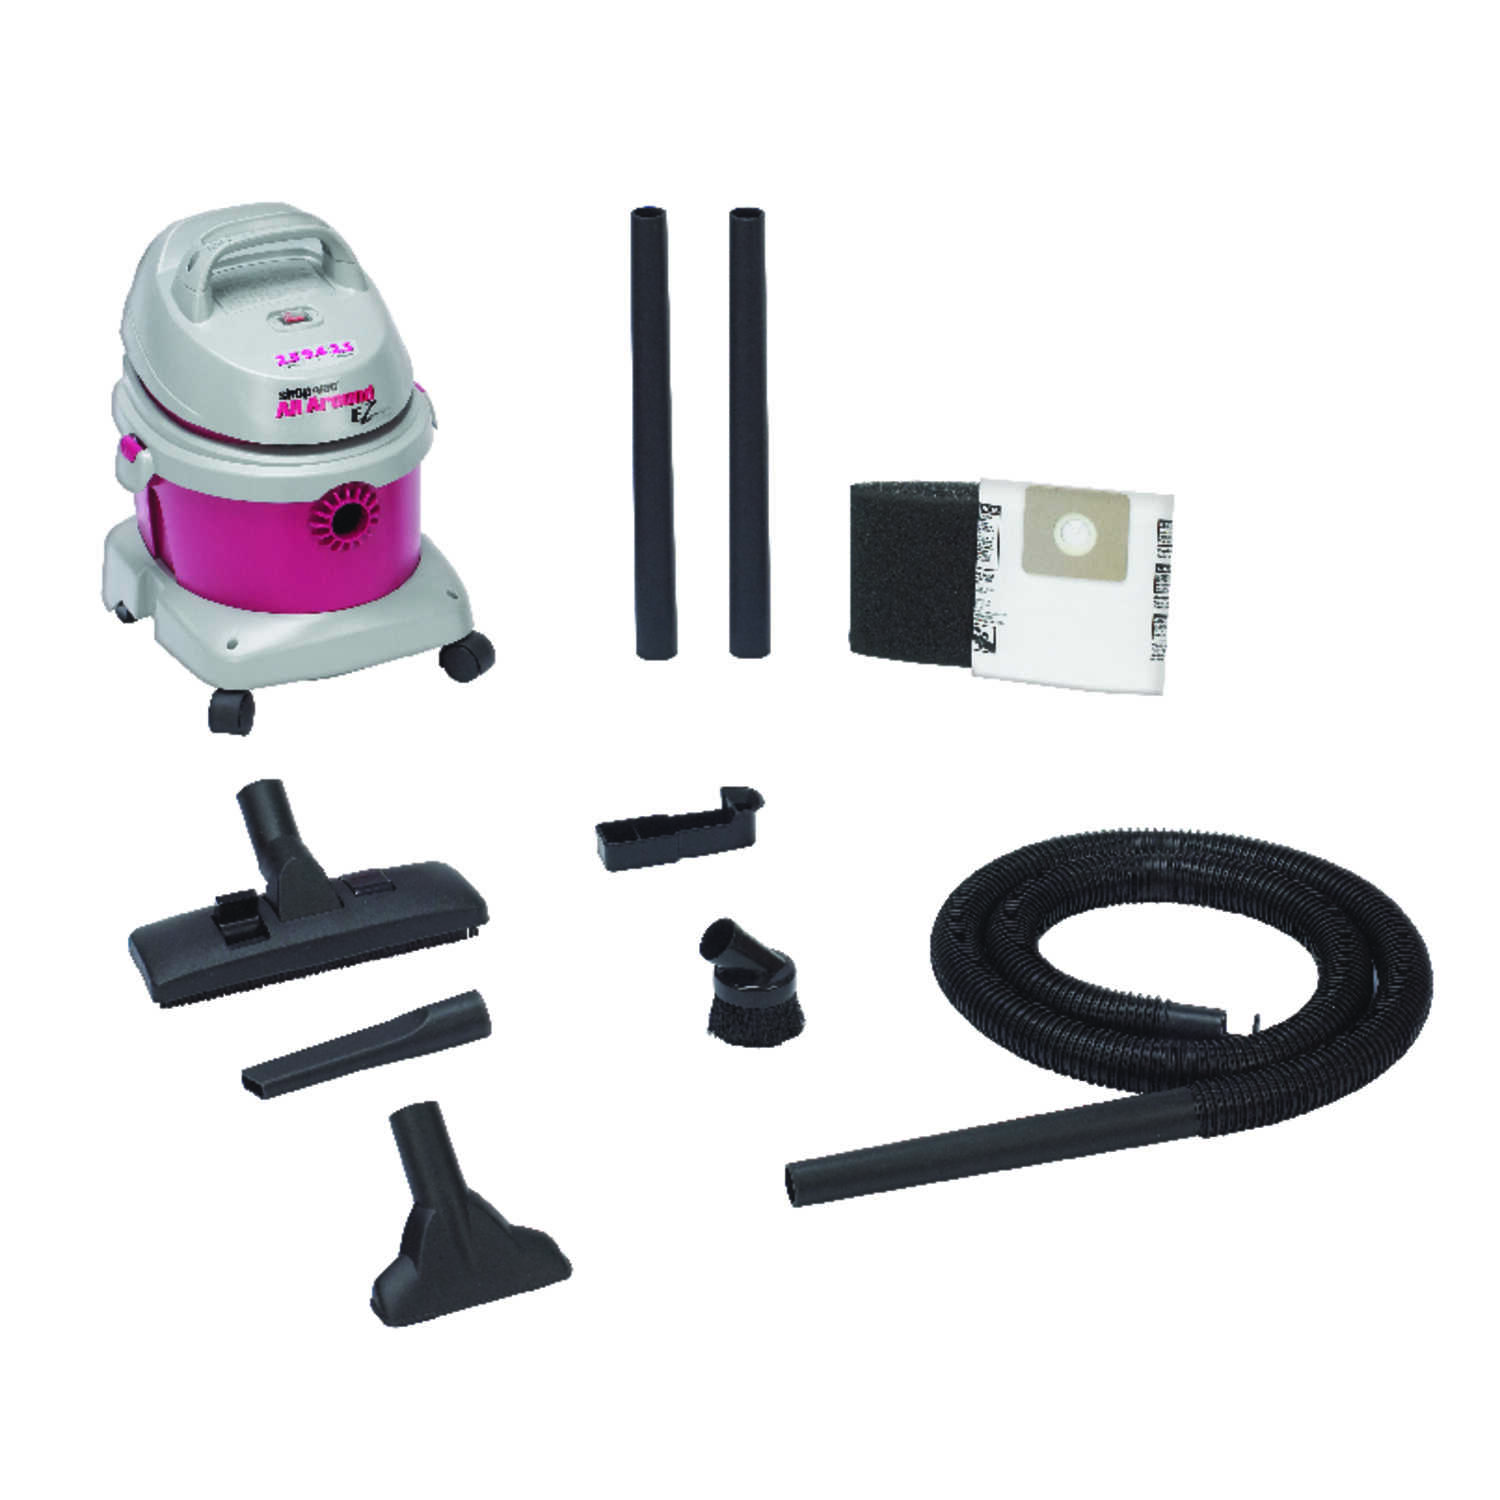 Shop-Vac  All Around EZ  2.5 gal. Corded  Wet/Dry Vacuum  8 are 120 volt 2.5 hp Pink  12 lb.